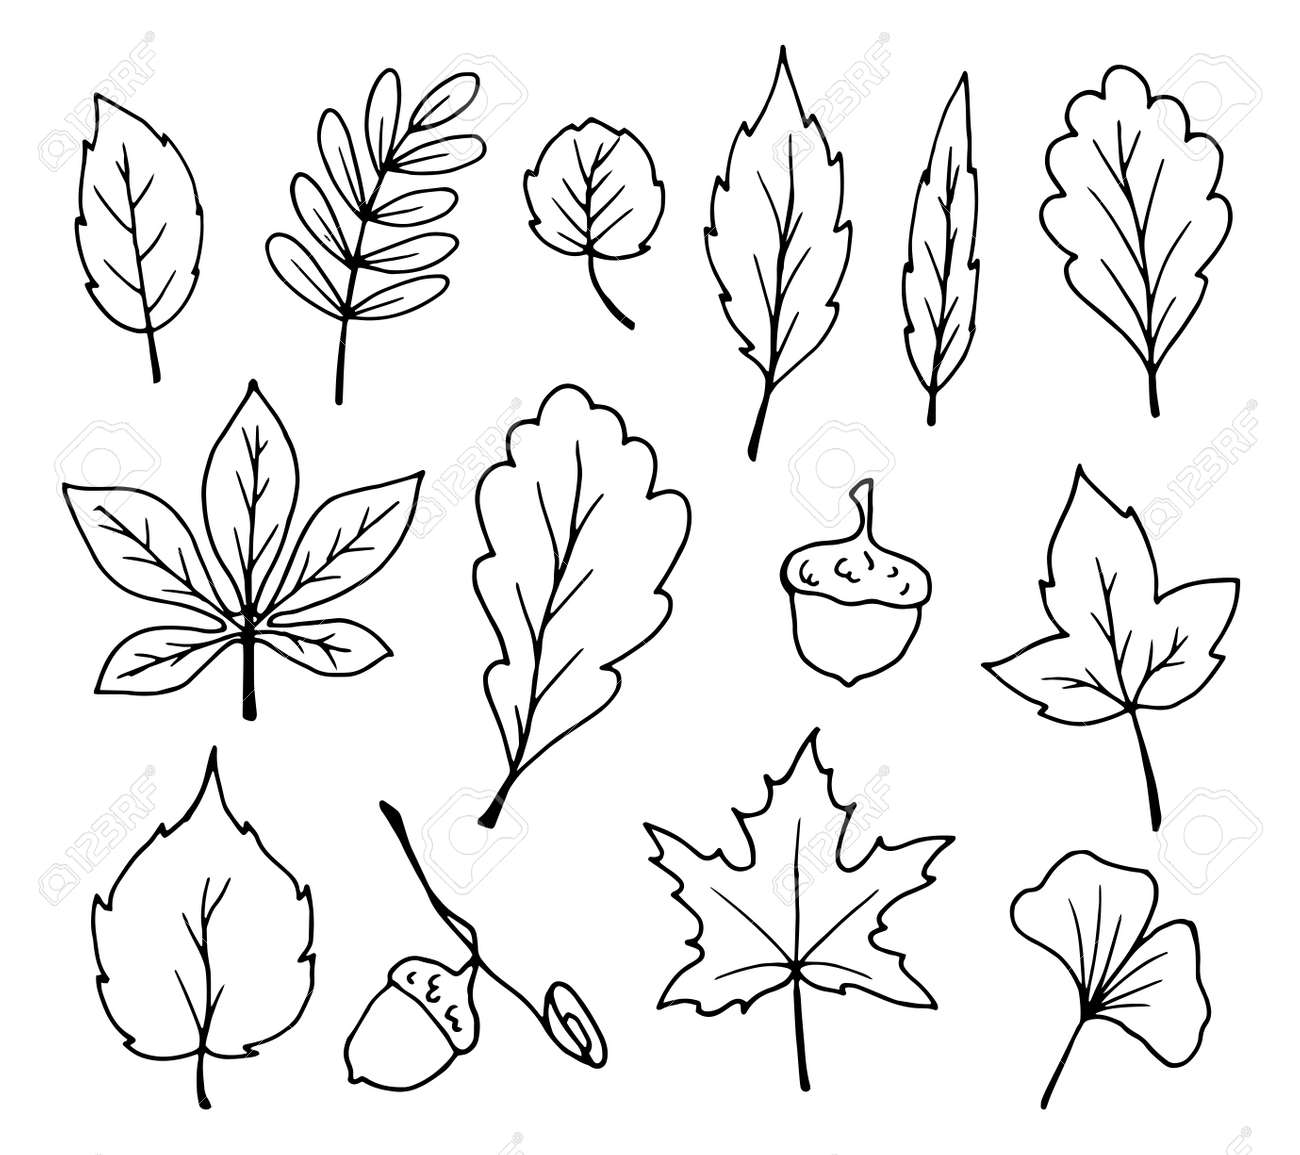 Doodle Leaves Vector Royalty Free Cliparts Vectors And Stock Illustration Image 86139820